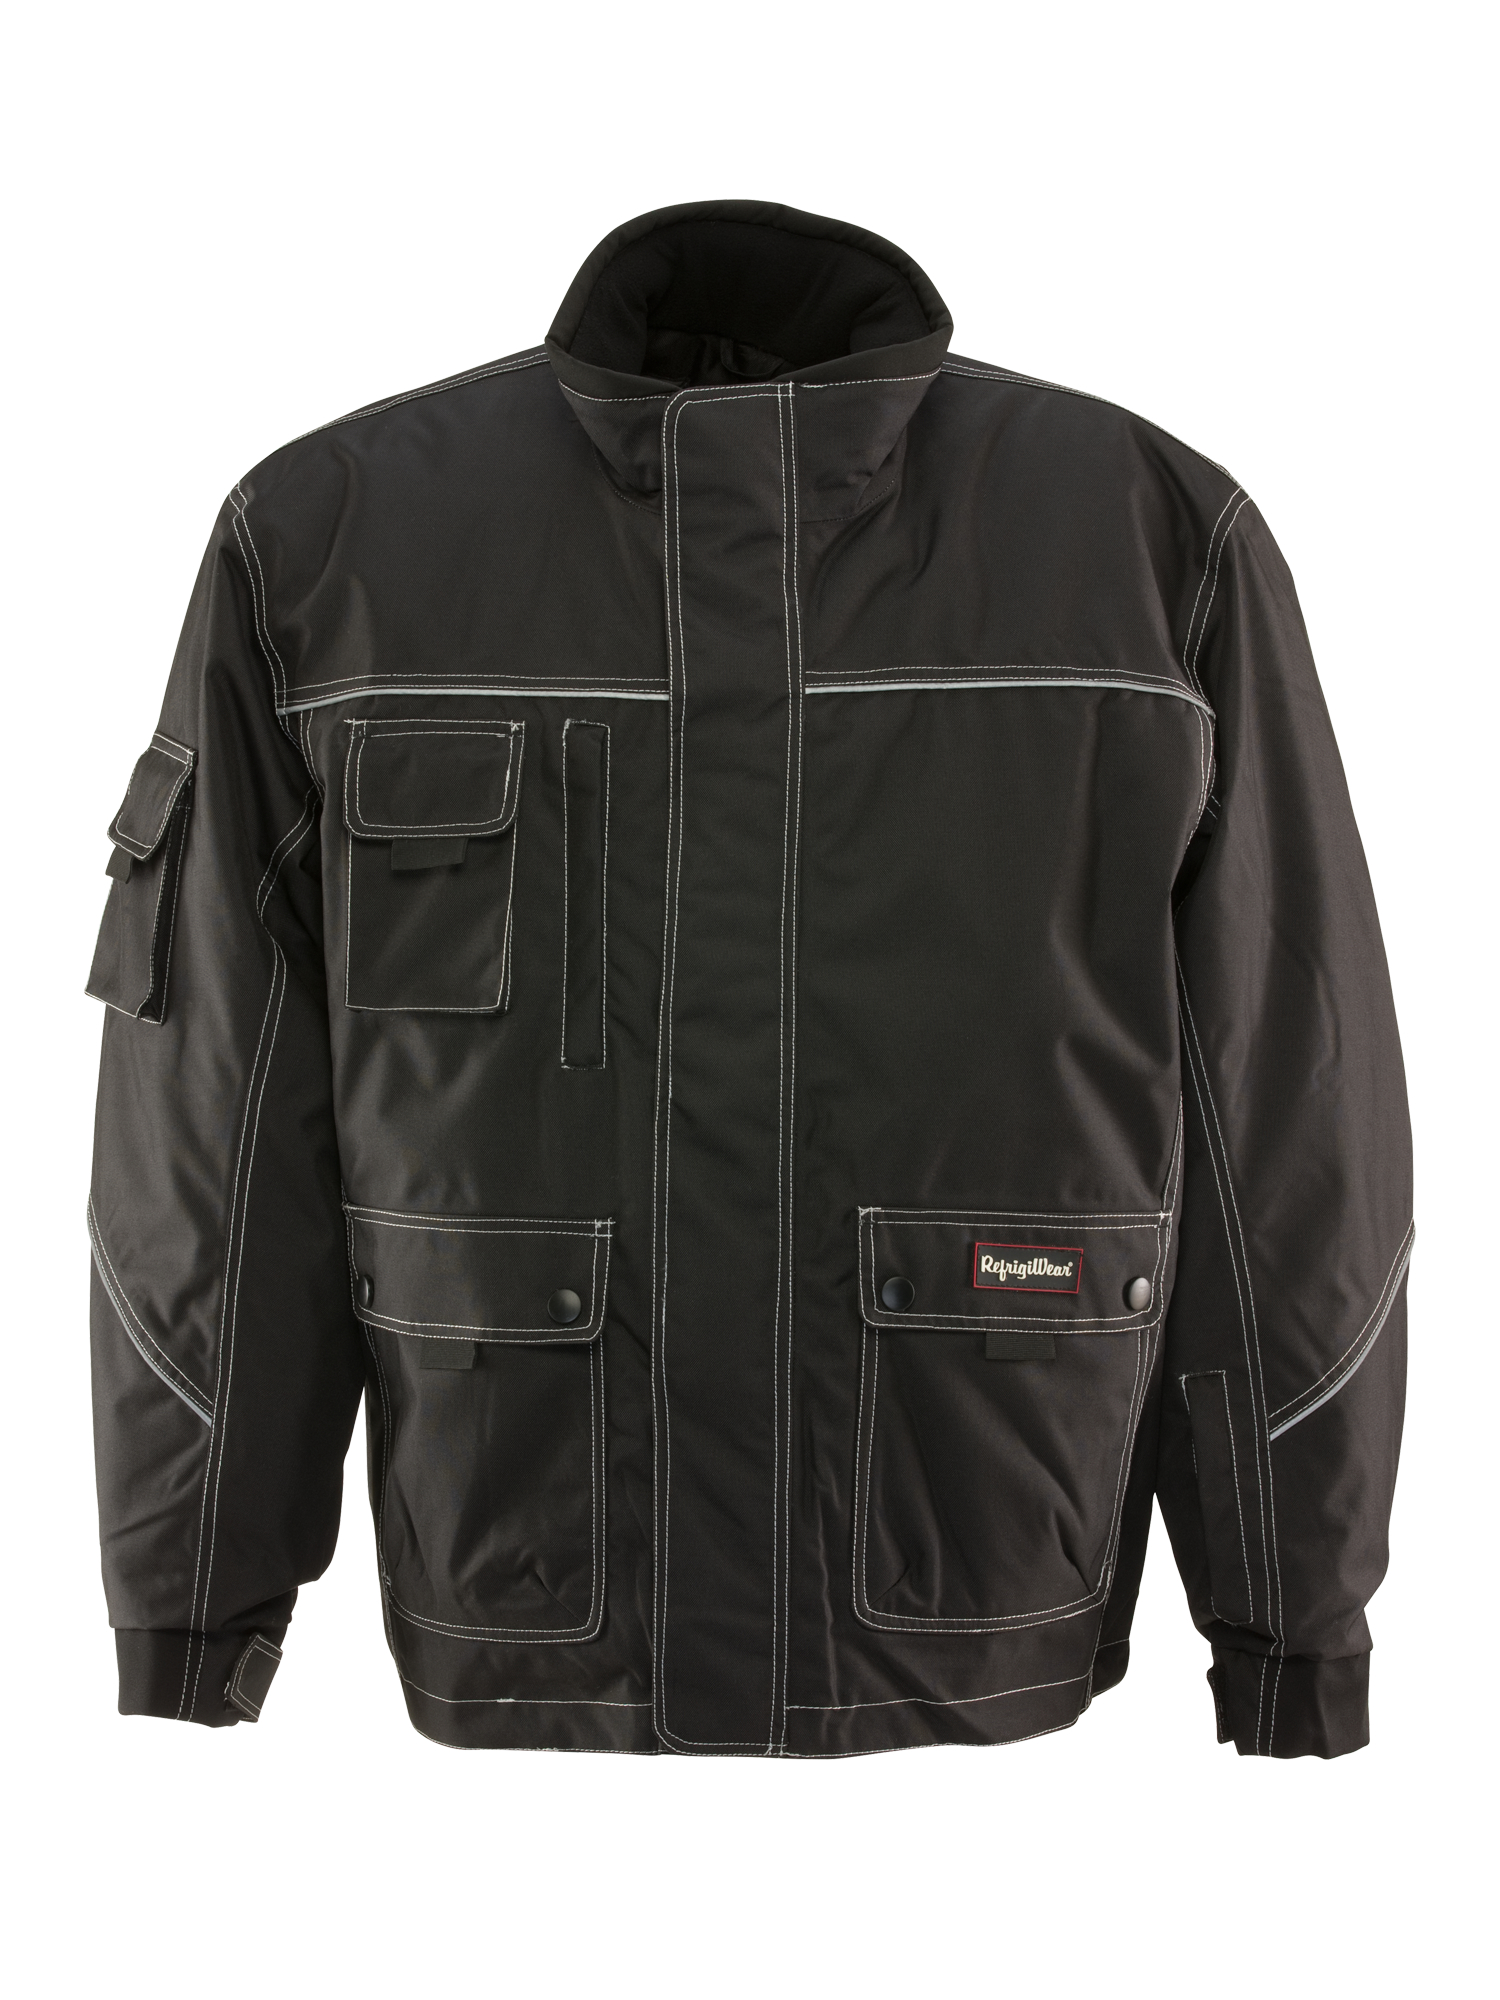 RefrigiWear Men's Waterproof ErgoForce Insulated Jacket with Reflective Piping